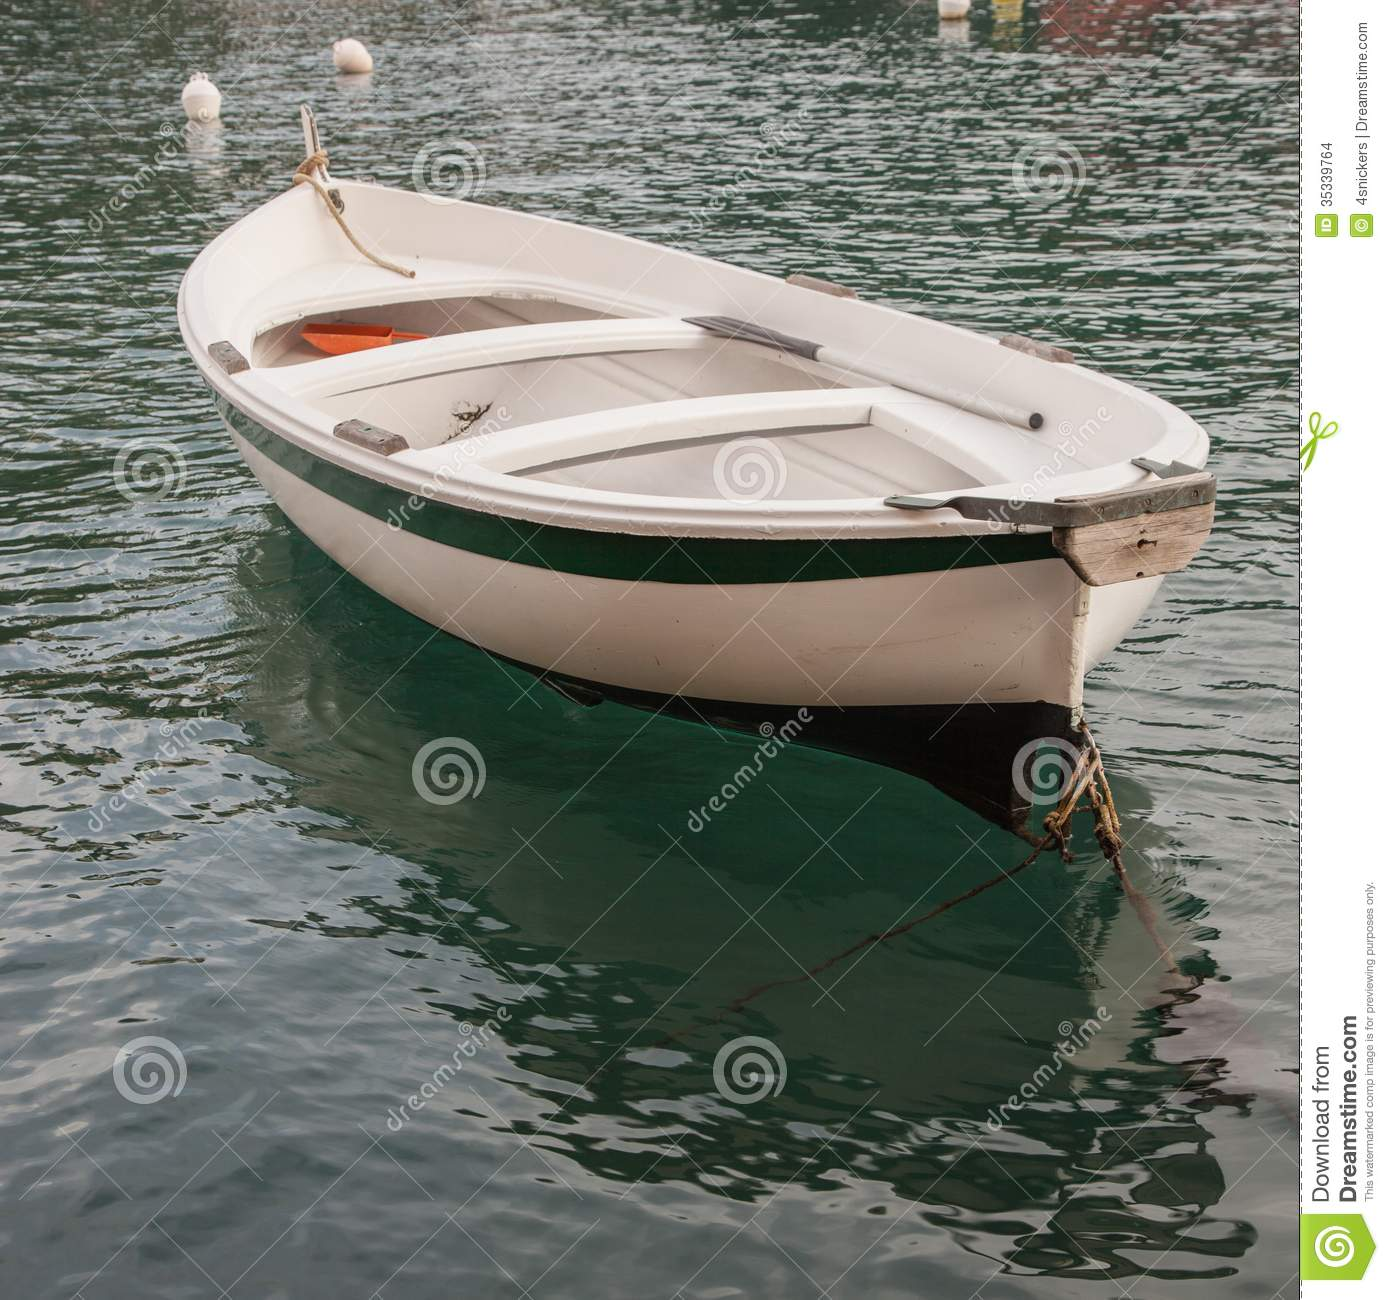 A simple fishing boat stock photo. Image of simple, industry - 35339764